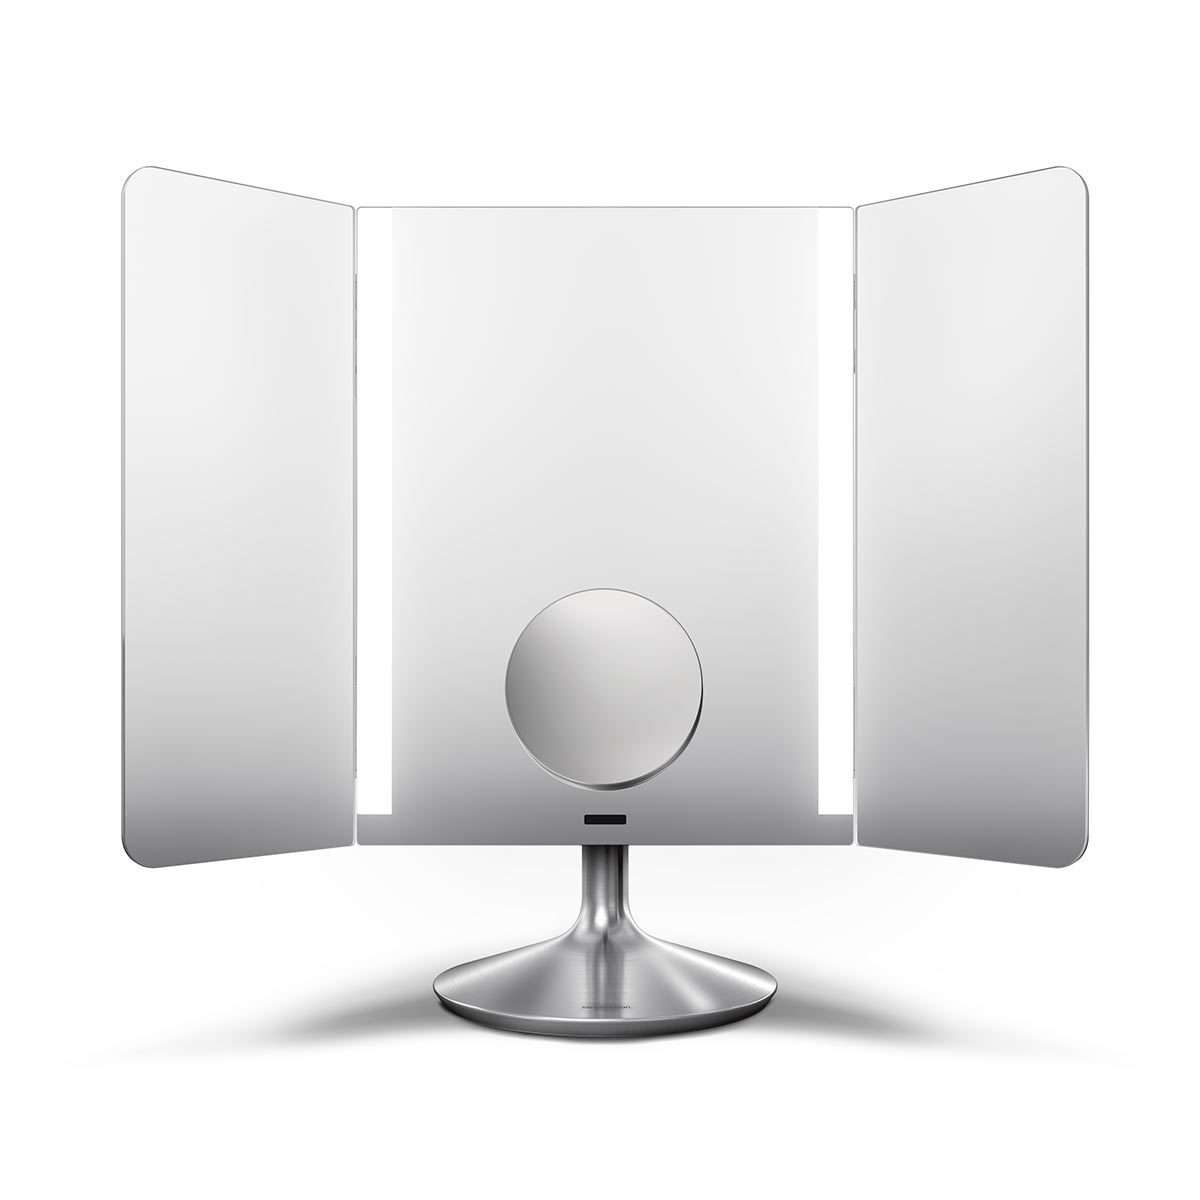 Simplehuman Wide View Illuminating Sensor Mirror ST3014Simplehuman Wide View Illuminating Sensor Mirror ST3014